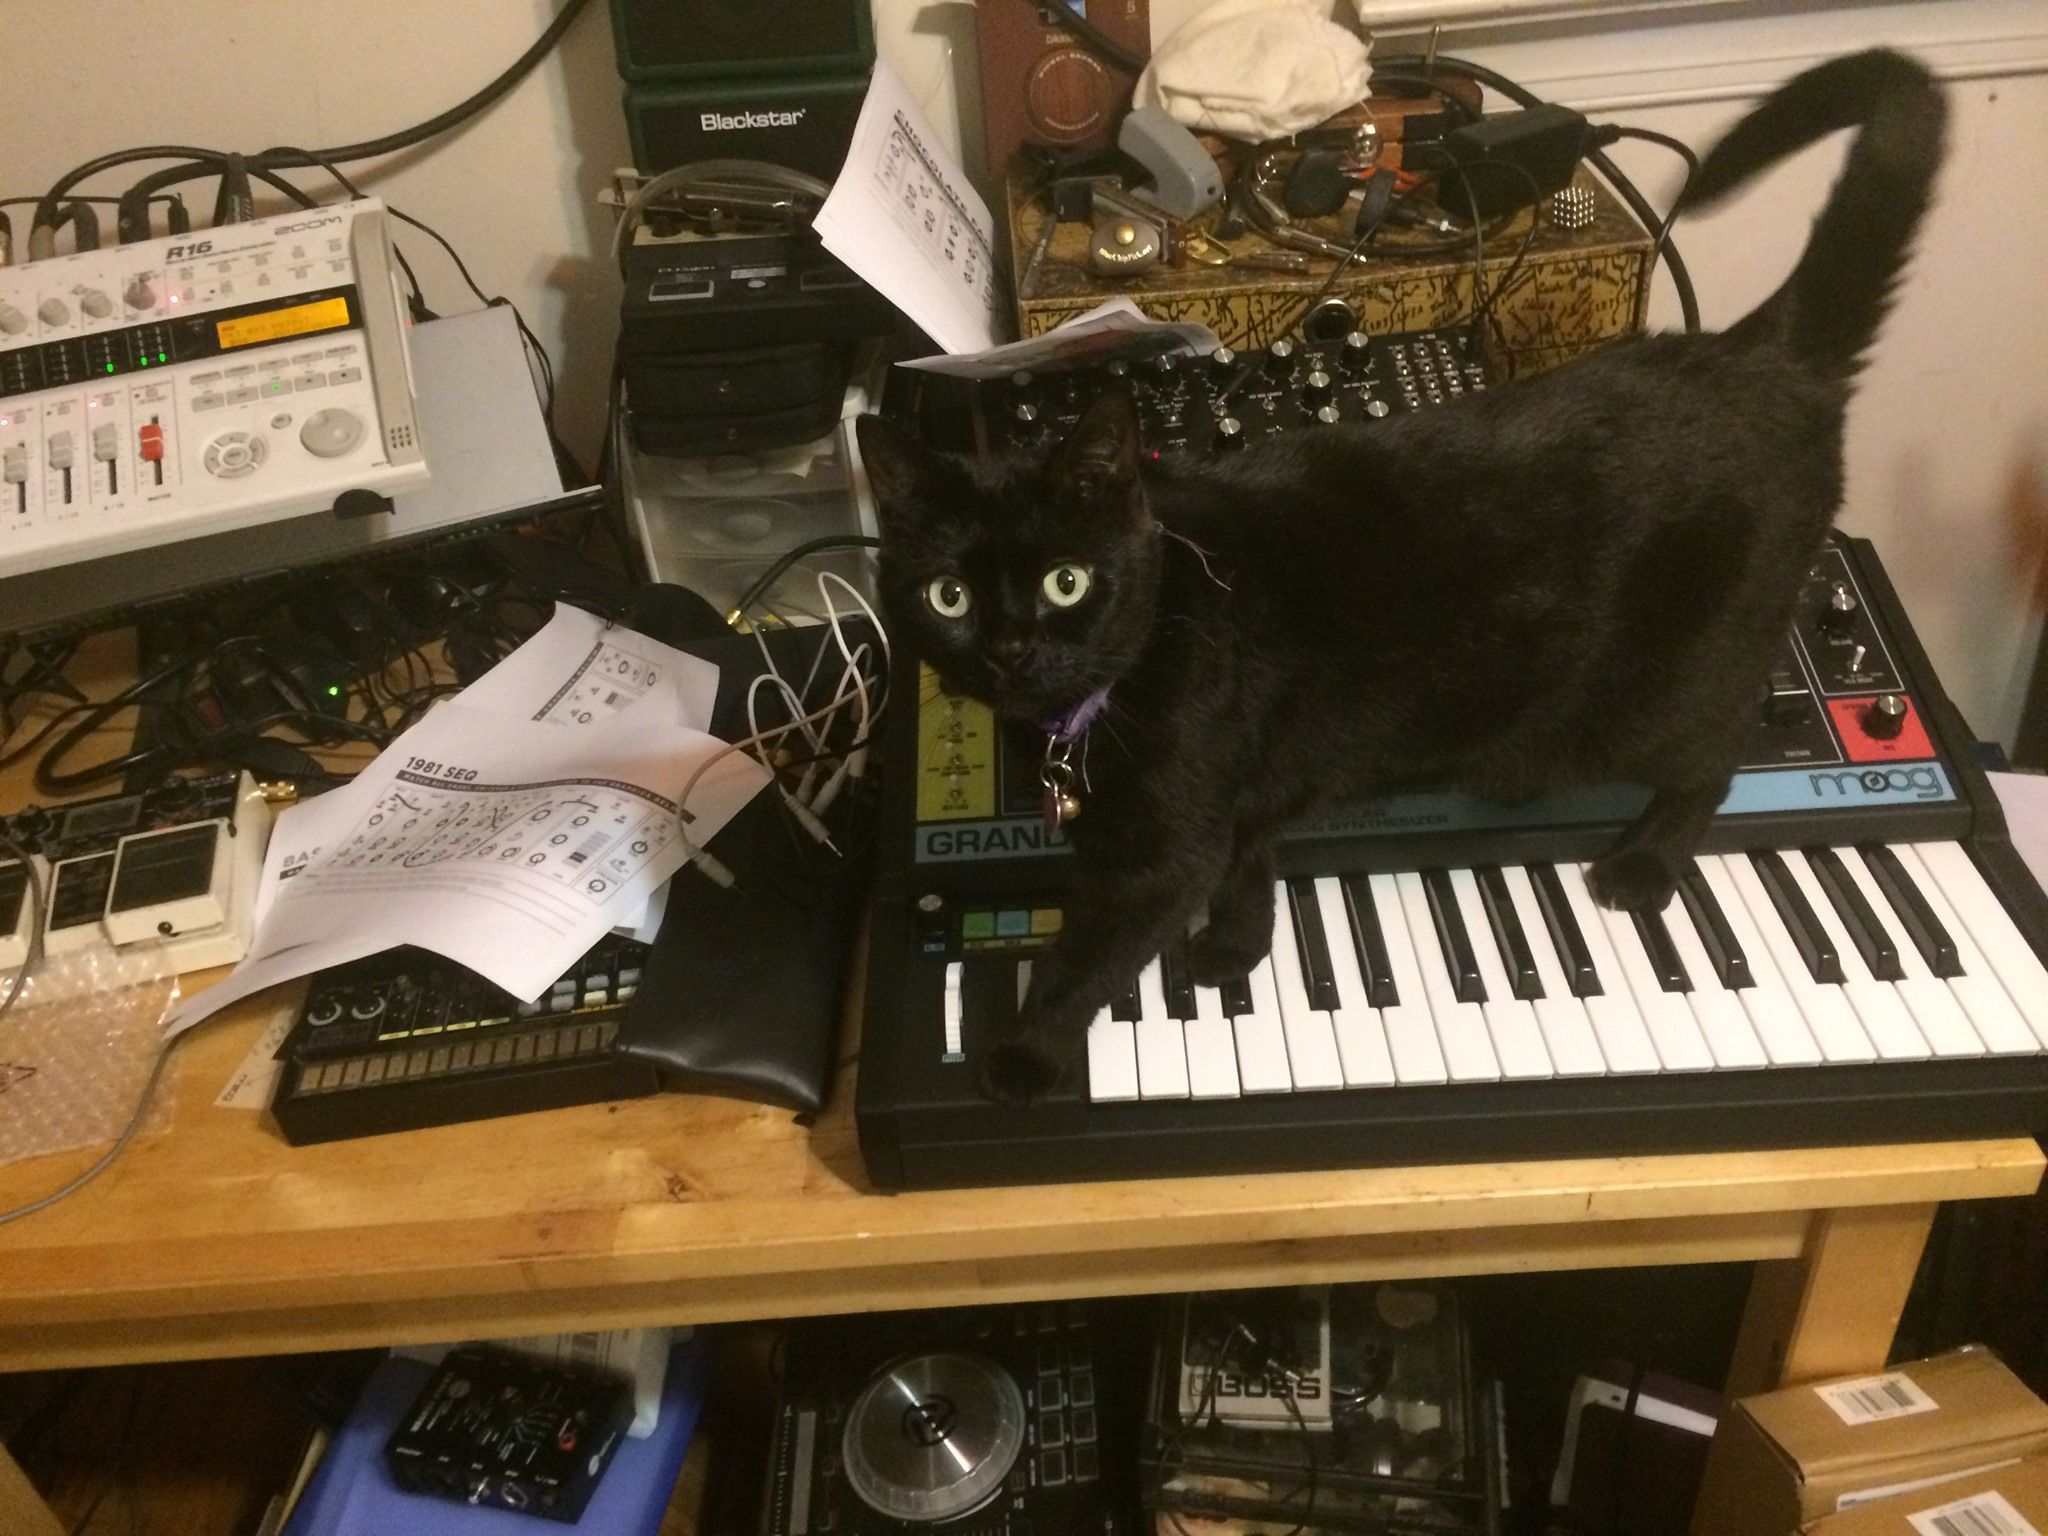 Beautiful black cat with Moog Grandmother synthesizer